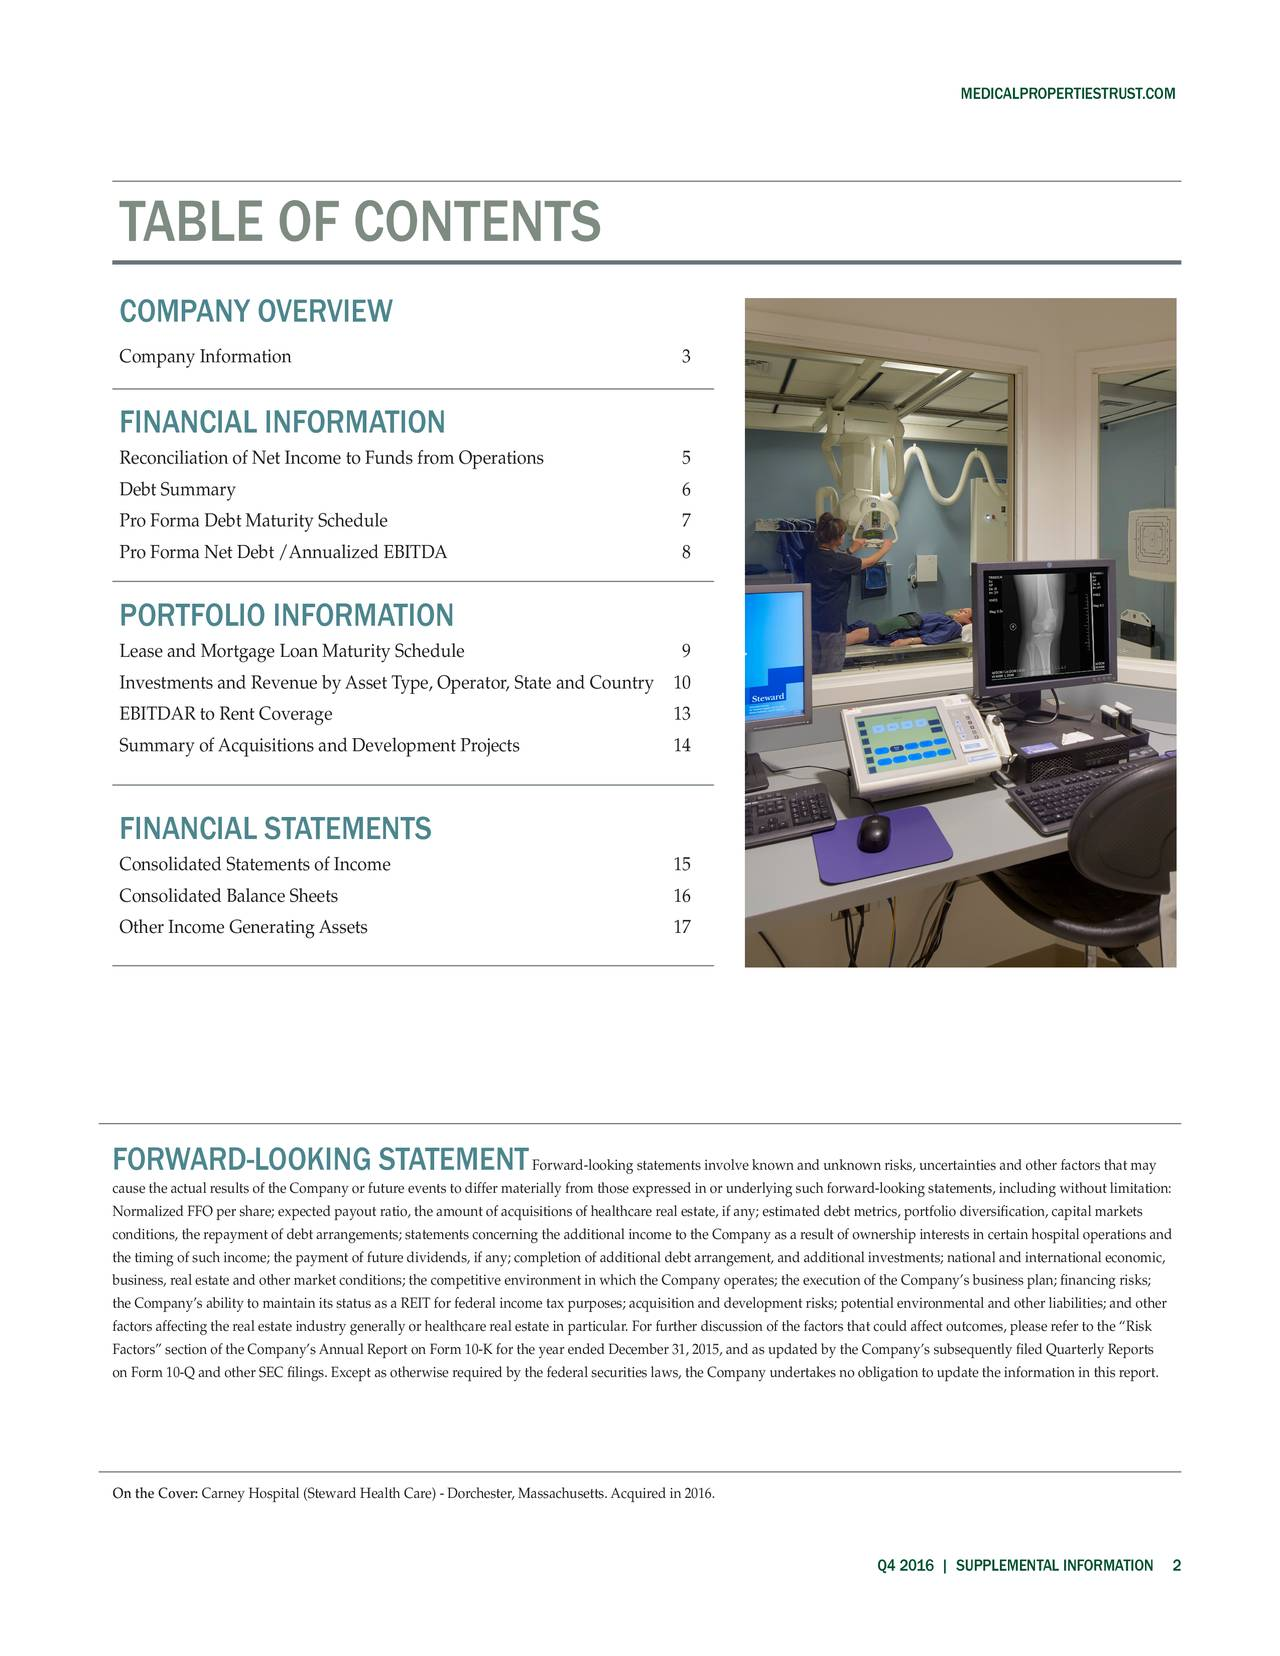 TABLE OF CONTENTS COMPANY OVERVIEW Company Information 3 FINANCIAL INFORMATION Reconciliation of Net Income to Funds from Operations 5 Debt Summary 6 Pro Forma Debt Maturity Schedule 7 Pro Forma Net Debt /Annualized EBITDA 8 PORTFOLIO INFORMATION Lease and Mortgage Loan Maturity Schedule 9 Investments and Revenue by Asset Type, Operator, State an0yCoun1tr EBITDAR to Rent Coverage 13 Summary of Acquisitions and Development Projects 14 FINANCIAL STATEMENTS Consolidated Statements of Income 15 Consolidated Balance Sheets 16 Other Income Generating Assets 17 FORWARD-LOOKING STATEME FNrward-looking statements involve known and unknown risks, uncertainties and other factors that may cause the actual results of the Company or future events to differ materially from those expressed in or underlying such forward-looking statements, including without limitation: Normalized FFO per share; expected payout ratio, the amount of acquisitions of healthcare real estate, if any; estimated debt metrics, portfolio diversification, capital markets conditions, the repayment of debt arrangements; statements concerning the additional income to the Company as a result of ownership interests in certain hospital operations and the timing of such income; the payment of future dividends, if any; completion of additional debt arrangement, and additional investments; national and international economic, business, real estate and other market conditions; the competitive environment in which the Company operates; the execution of the Companys business plan; financing risks; the Companys ability to maintain its status as a REIT for federal income tax purposes; acquisition and development risks; potential environmental and other liabilities; and other factors affecting the real estate industry generally or healthcare real estate in particular. For further discussion of the factors that could affect outcomes, please refer to the Risk Factors section of the Companys Annual Report on Form 10-K for the year ended December 31, 2015, and as updated by the Companys subsequently filed Quarterly Reports on Form 10-Q and other SEC filings. Except as otherwise required by the federal securities laws, the Company undertakes no obligation to update the information in this report. On the Co: arney Hospital (Steward Health Care) - Dorchester, Massachusetts. Acquired in 2016. Q4 2016 | SUPPLEMENTAL INFORMATIO2N